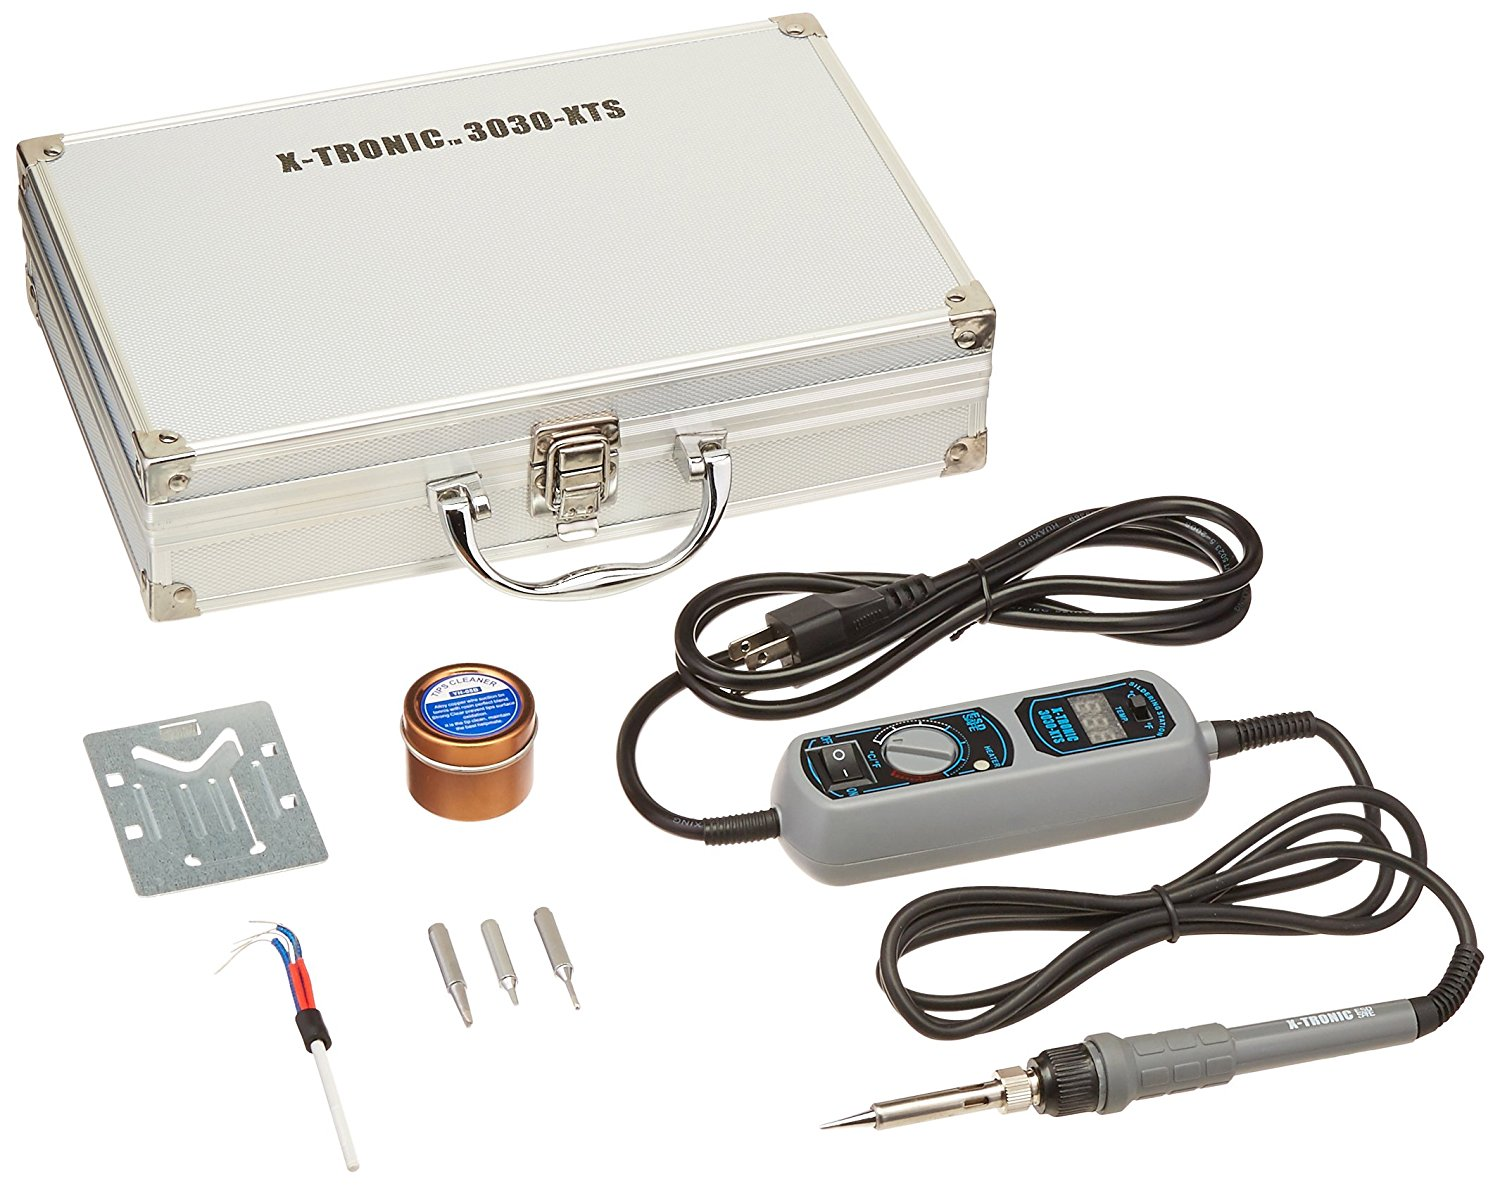 USA EXCLUSIVE X-TRONIC MODEL #3030-XTS TRAVEL KIT - Includes Control Module With Blue LED Display & Variable Heat 65 Watt Soldering Iron, Spare Element, Tip Cleaner with Cleaning Flux & 4 Solder Tips